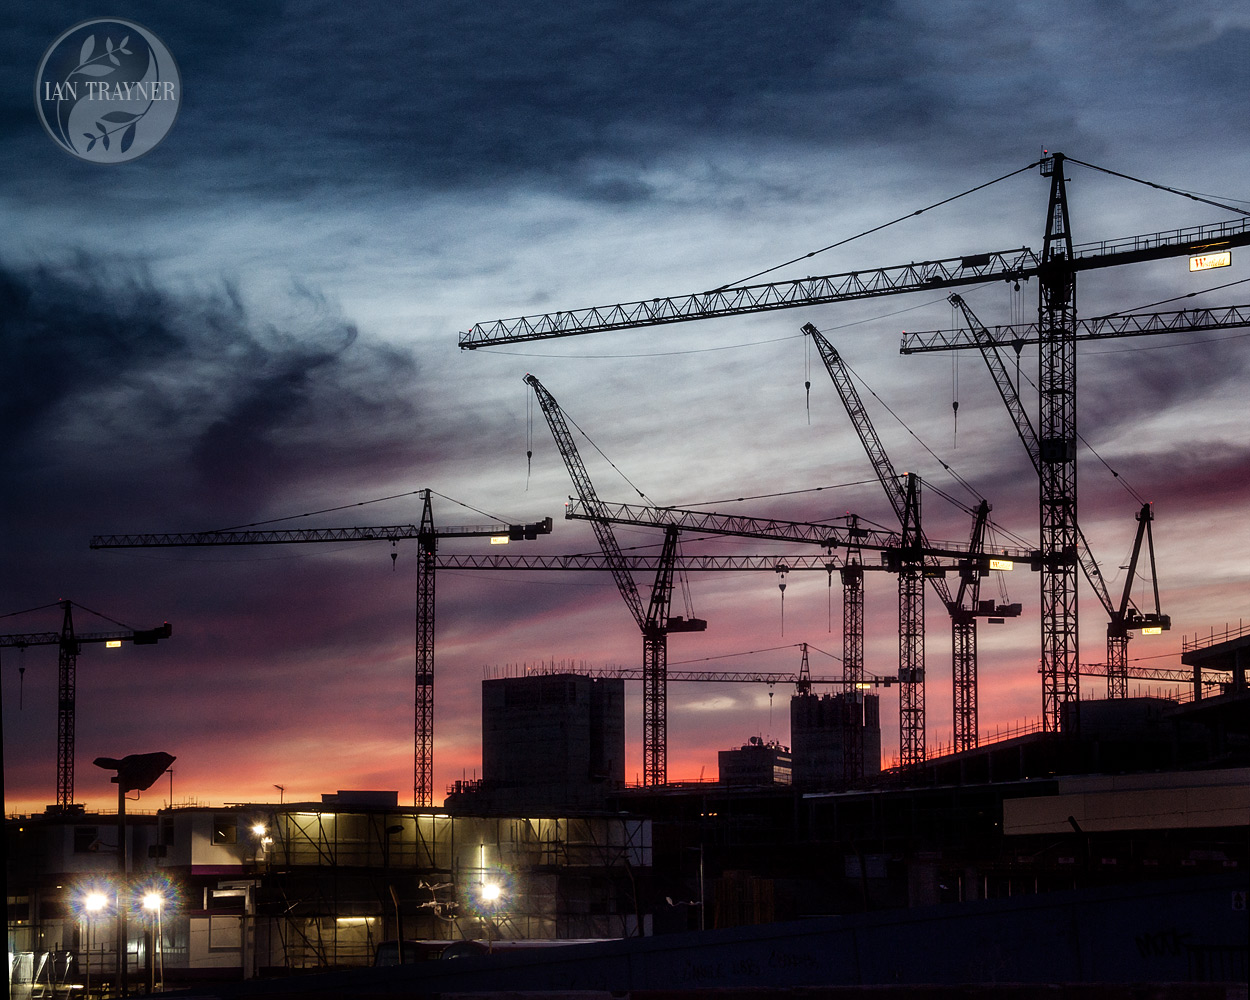 Dusk is falling. Cranes silhouetted against the sunset. Construction of Westfield London in 2007. Photo by Ian Trayner.